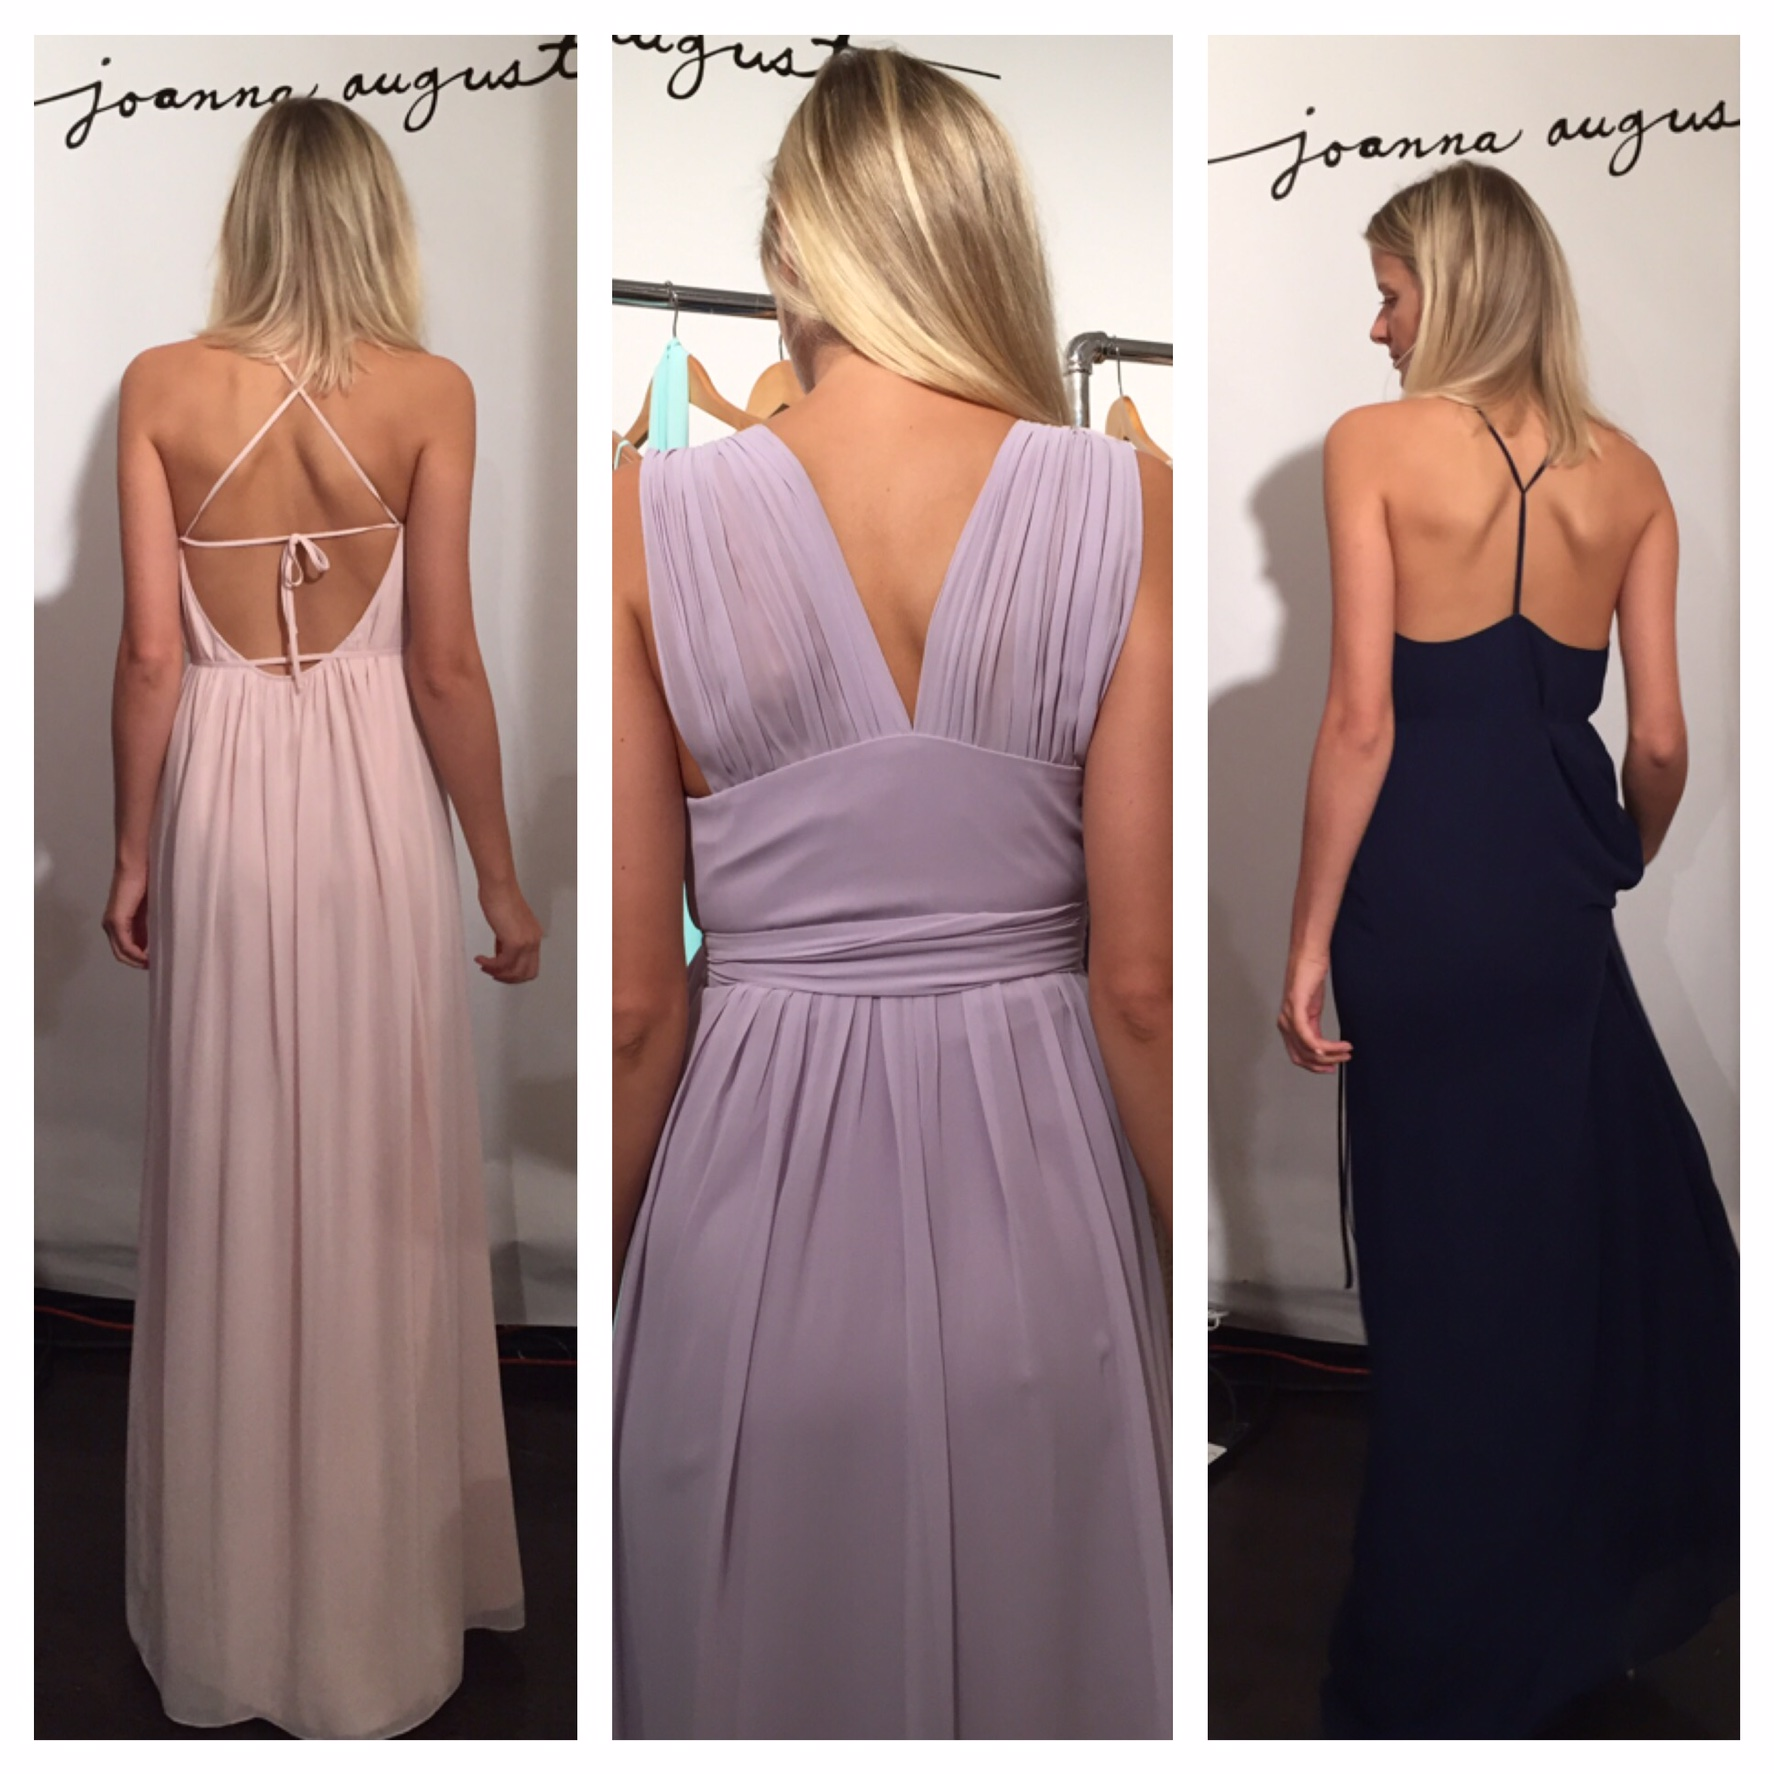 New Styles by Joanna August